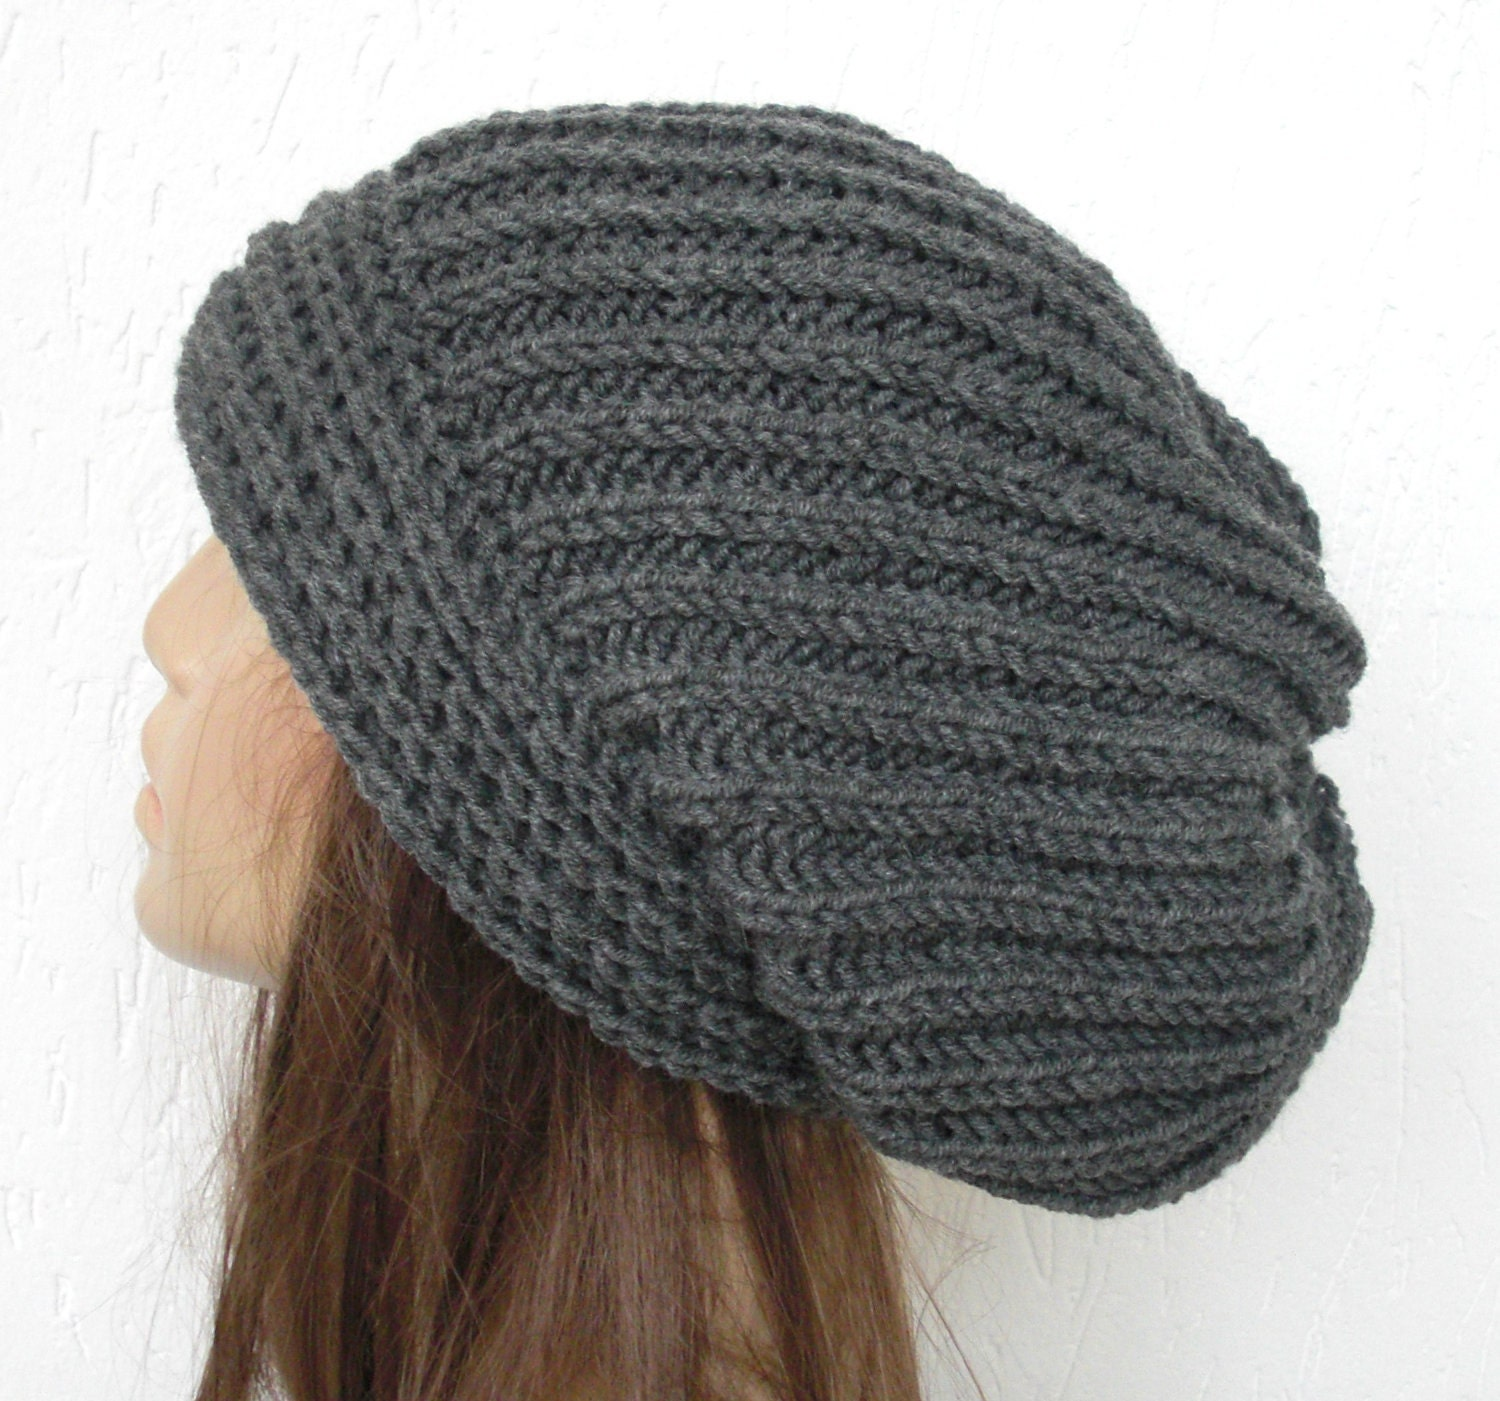 knit winter hat knit hat slouchy beanie gray hat